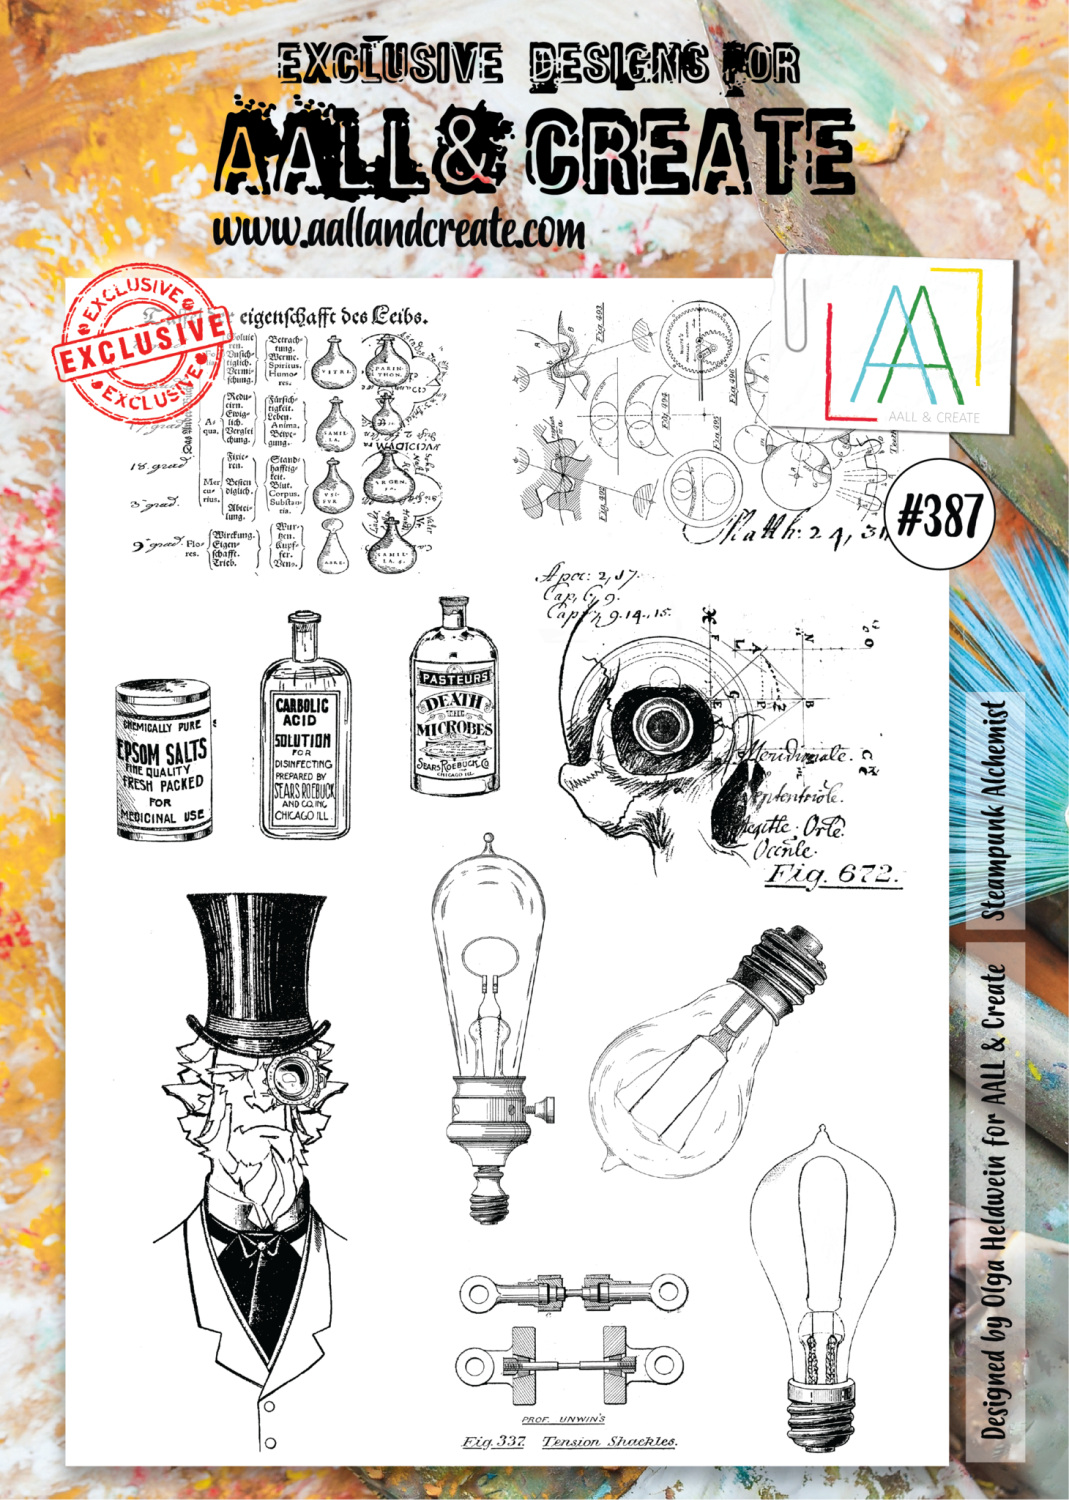 Aall&Create -steampunk-alchemist-387 - A4 STAMPS -